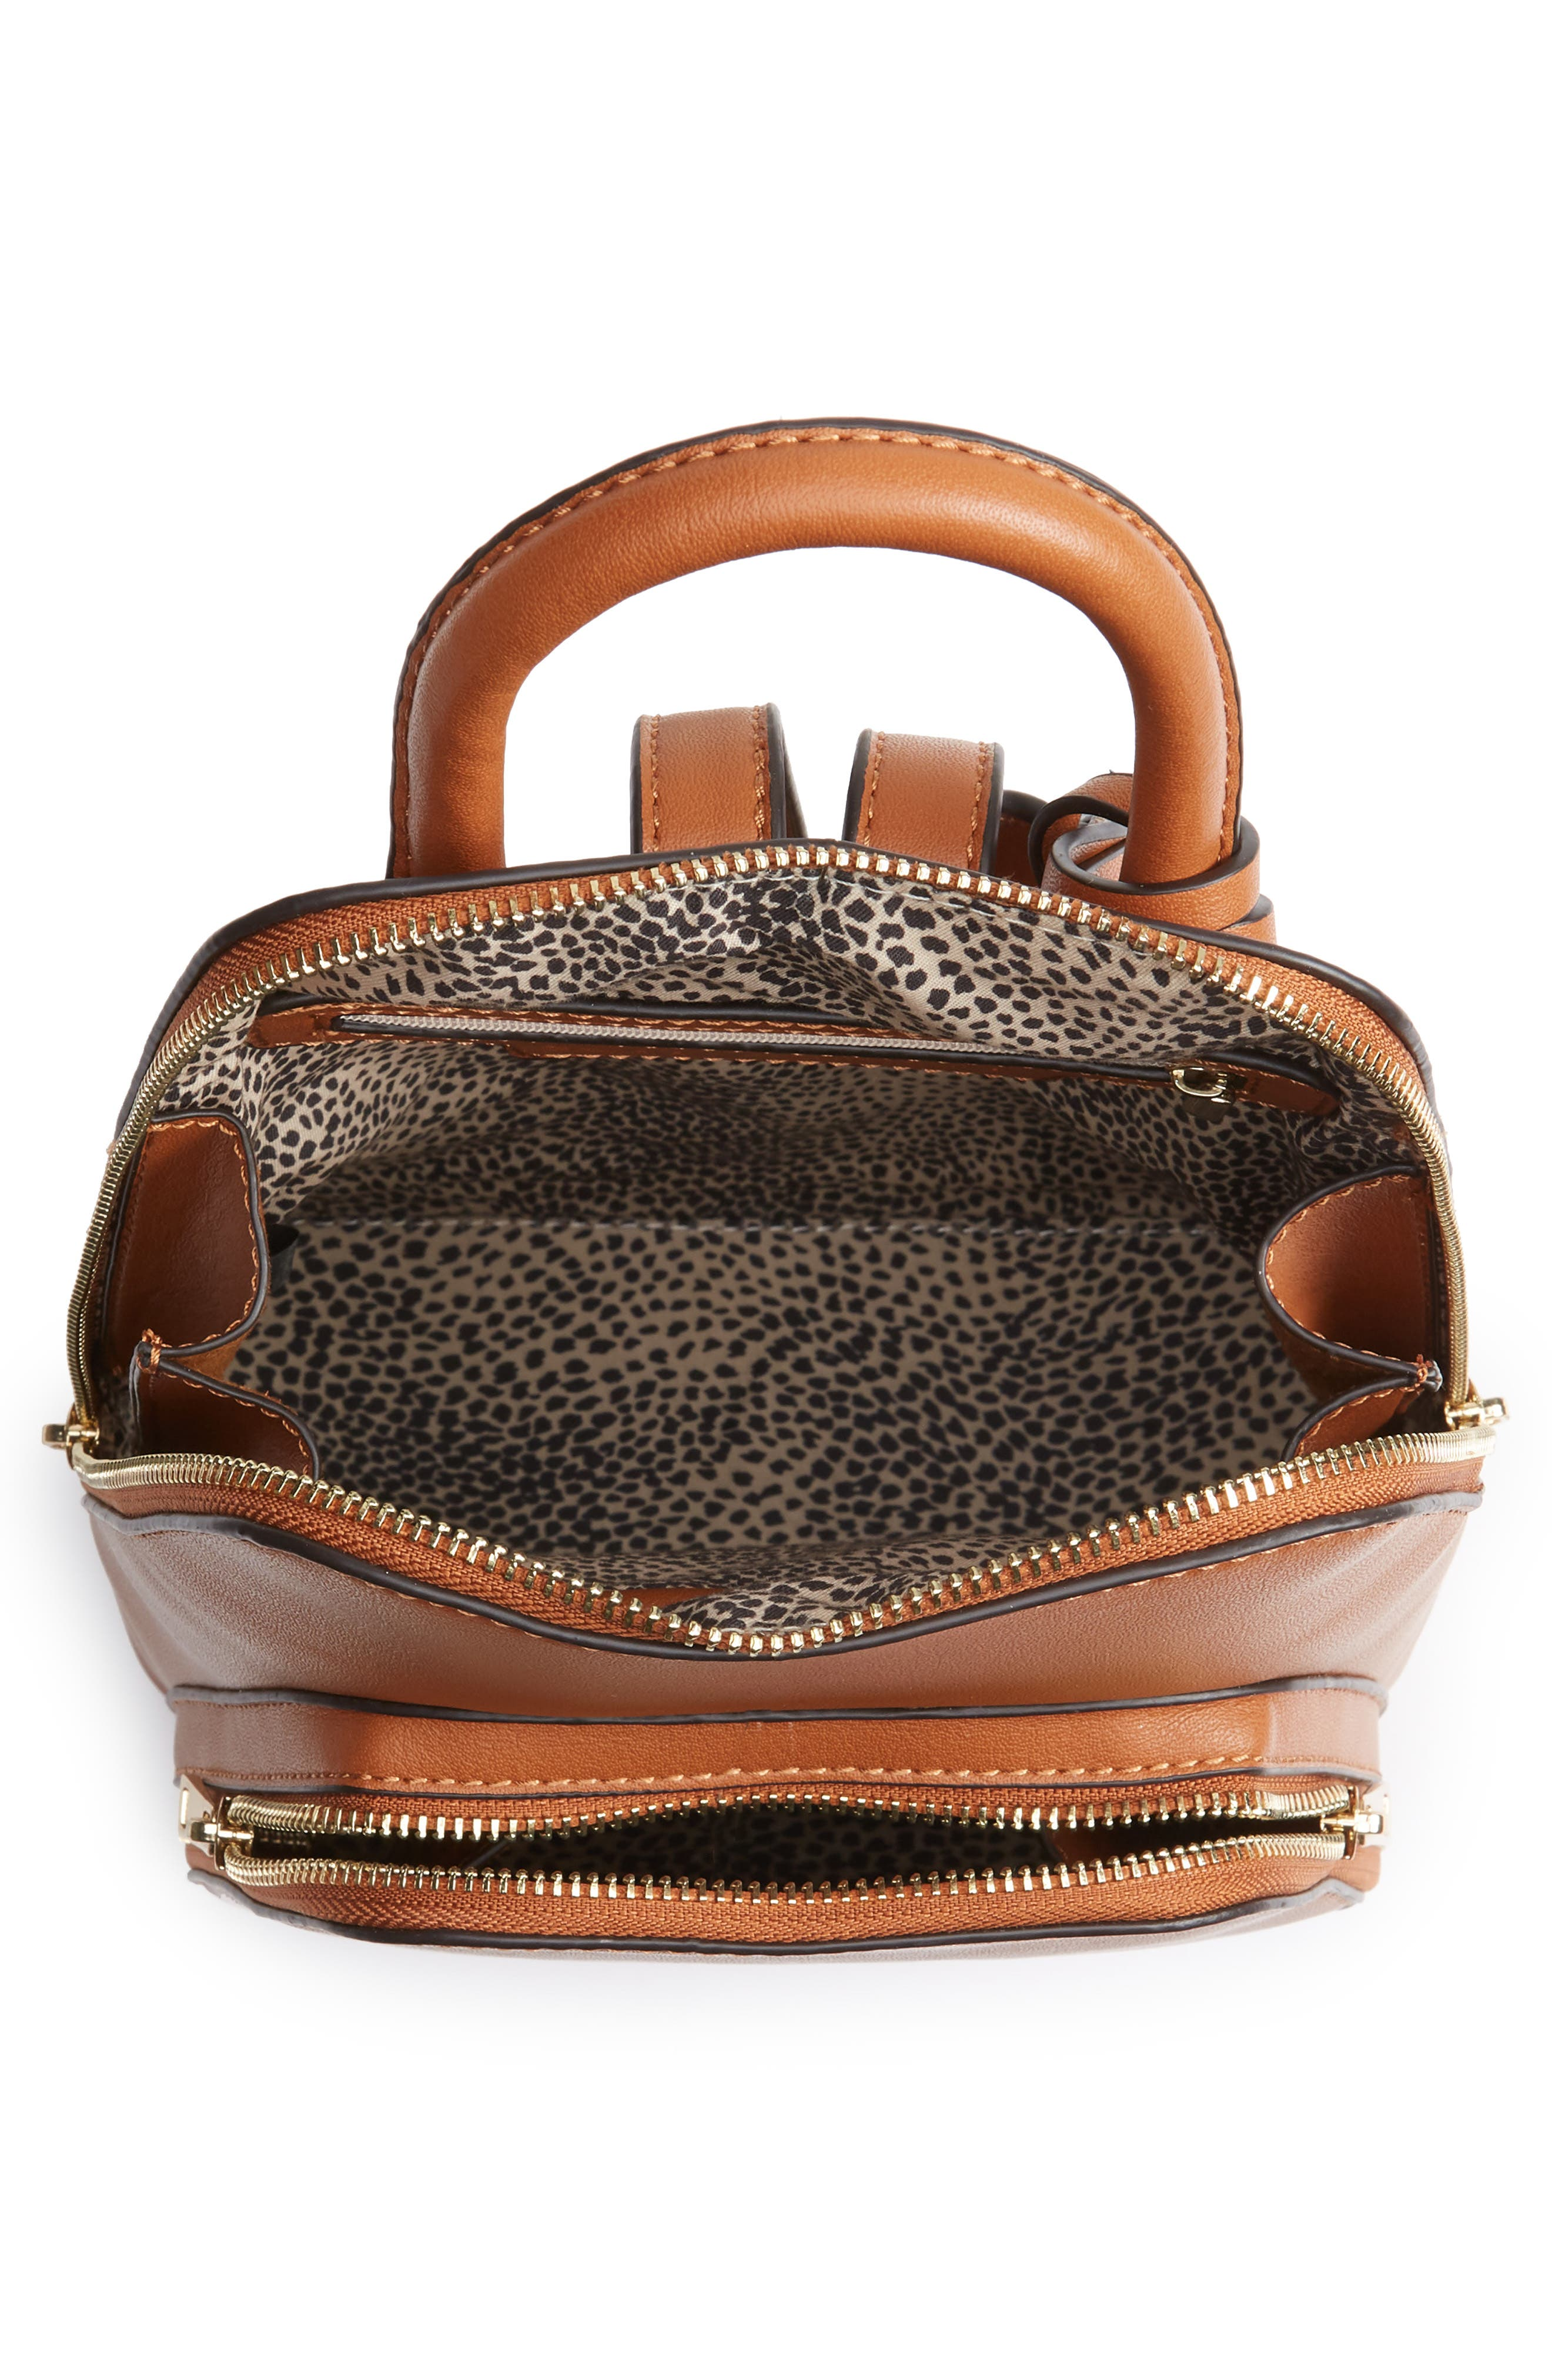 SOLE SOCIETY, Aushan Faux Leather Backpack, Alternate thumbnail 5, color, COGNAC